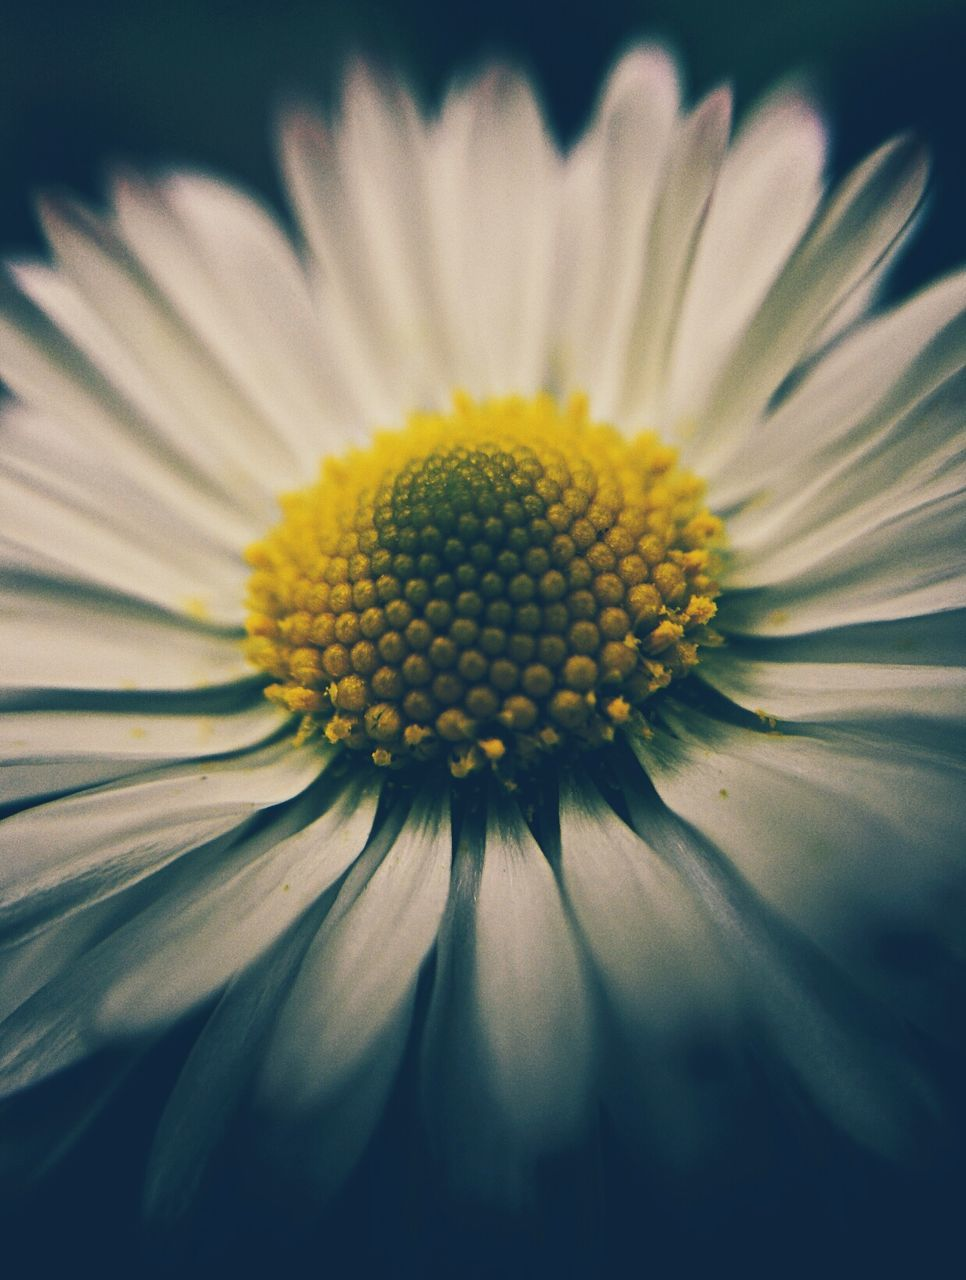 flower, yellow, fragility, petal, flower head, beauty in nature, nature, freshness, growth, pollen, blooming, no people, close-up, day, plant, outdoors, black-eyed susan